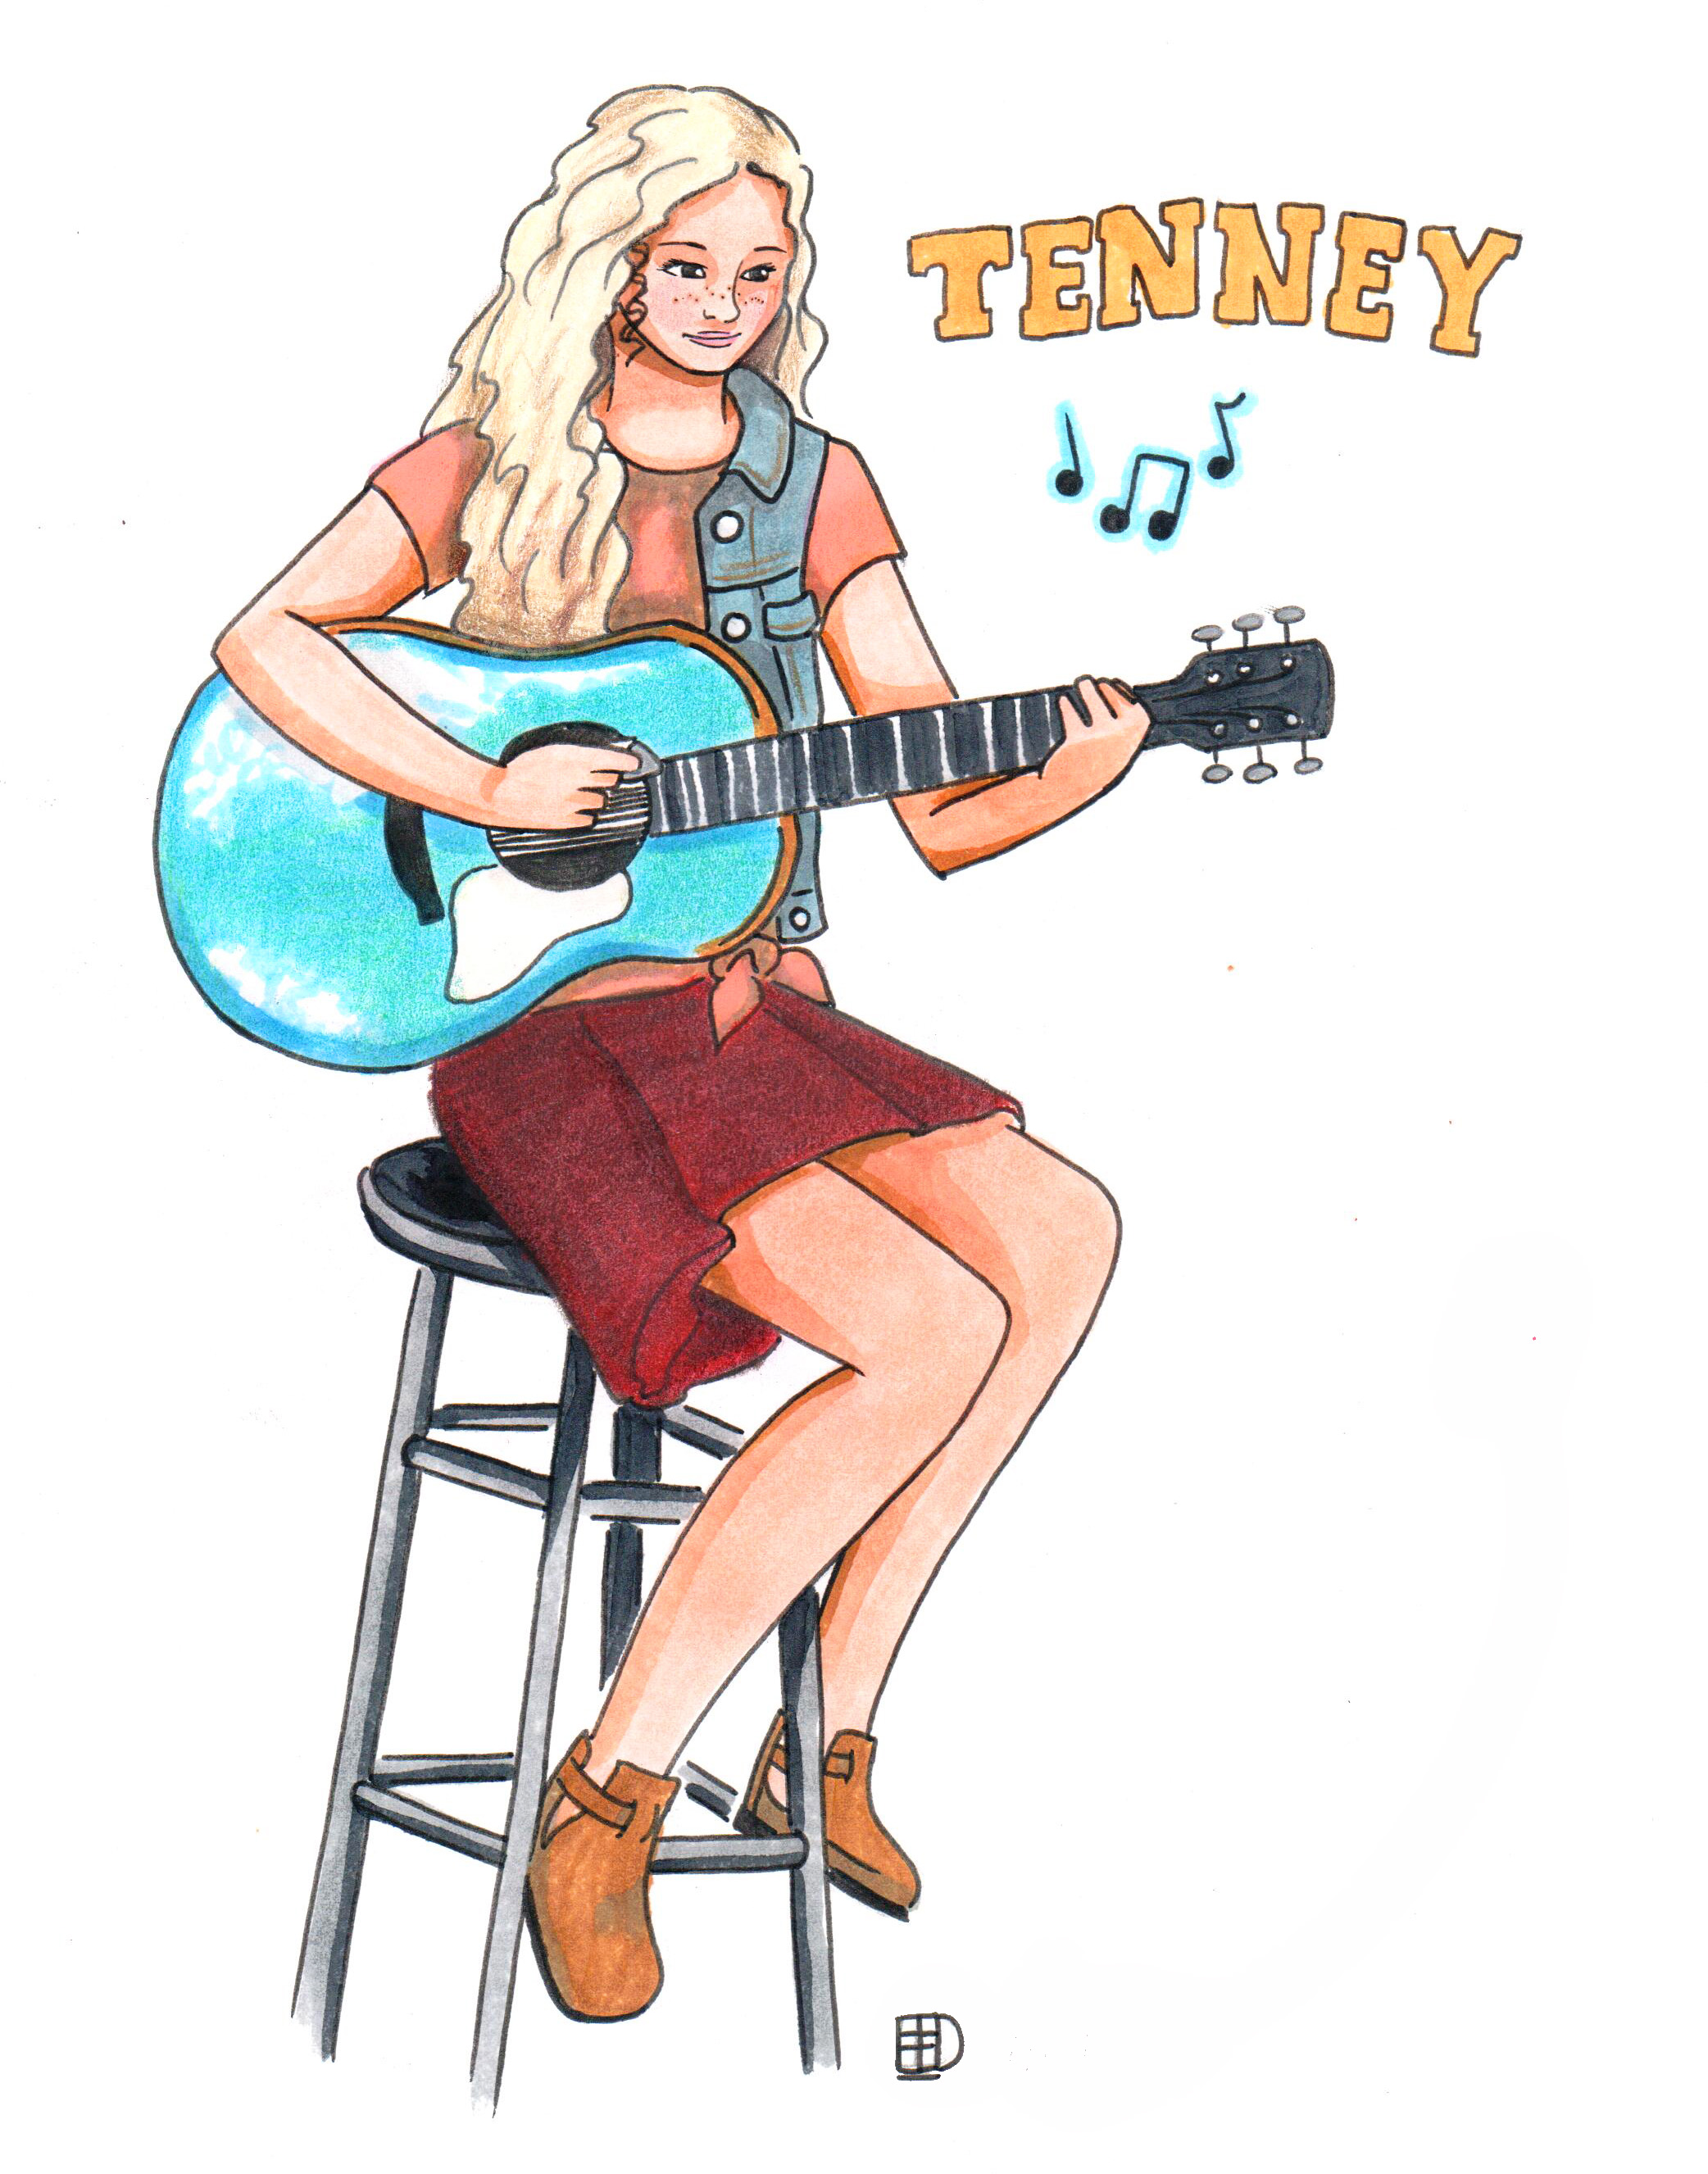 Tenneycolored